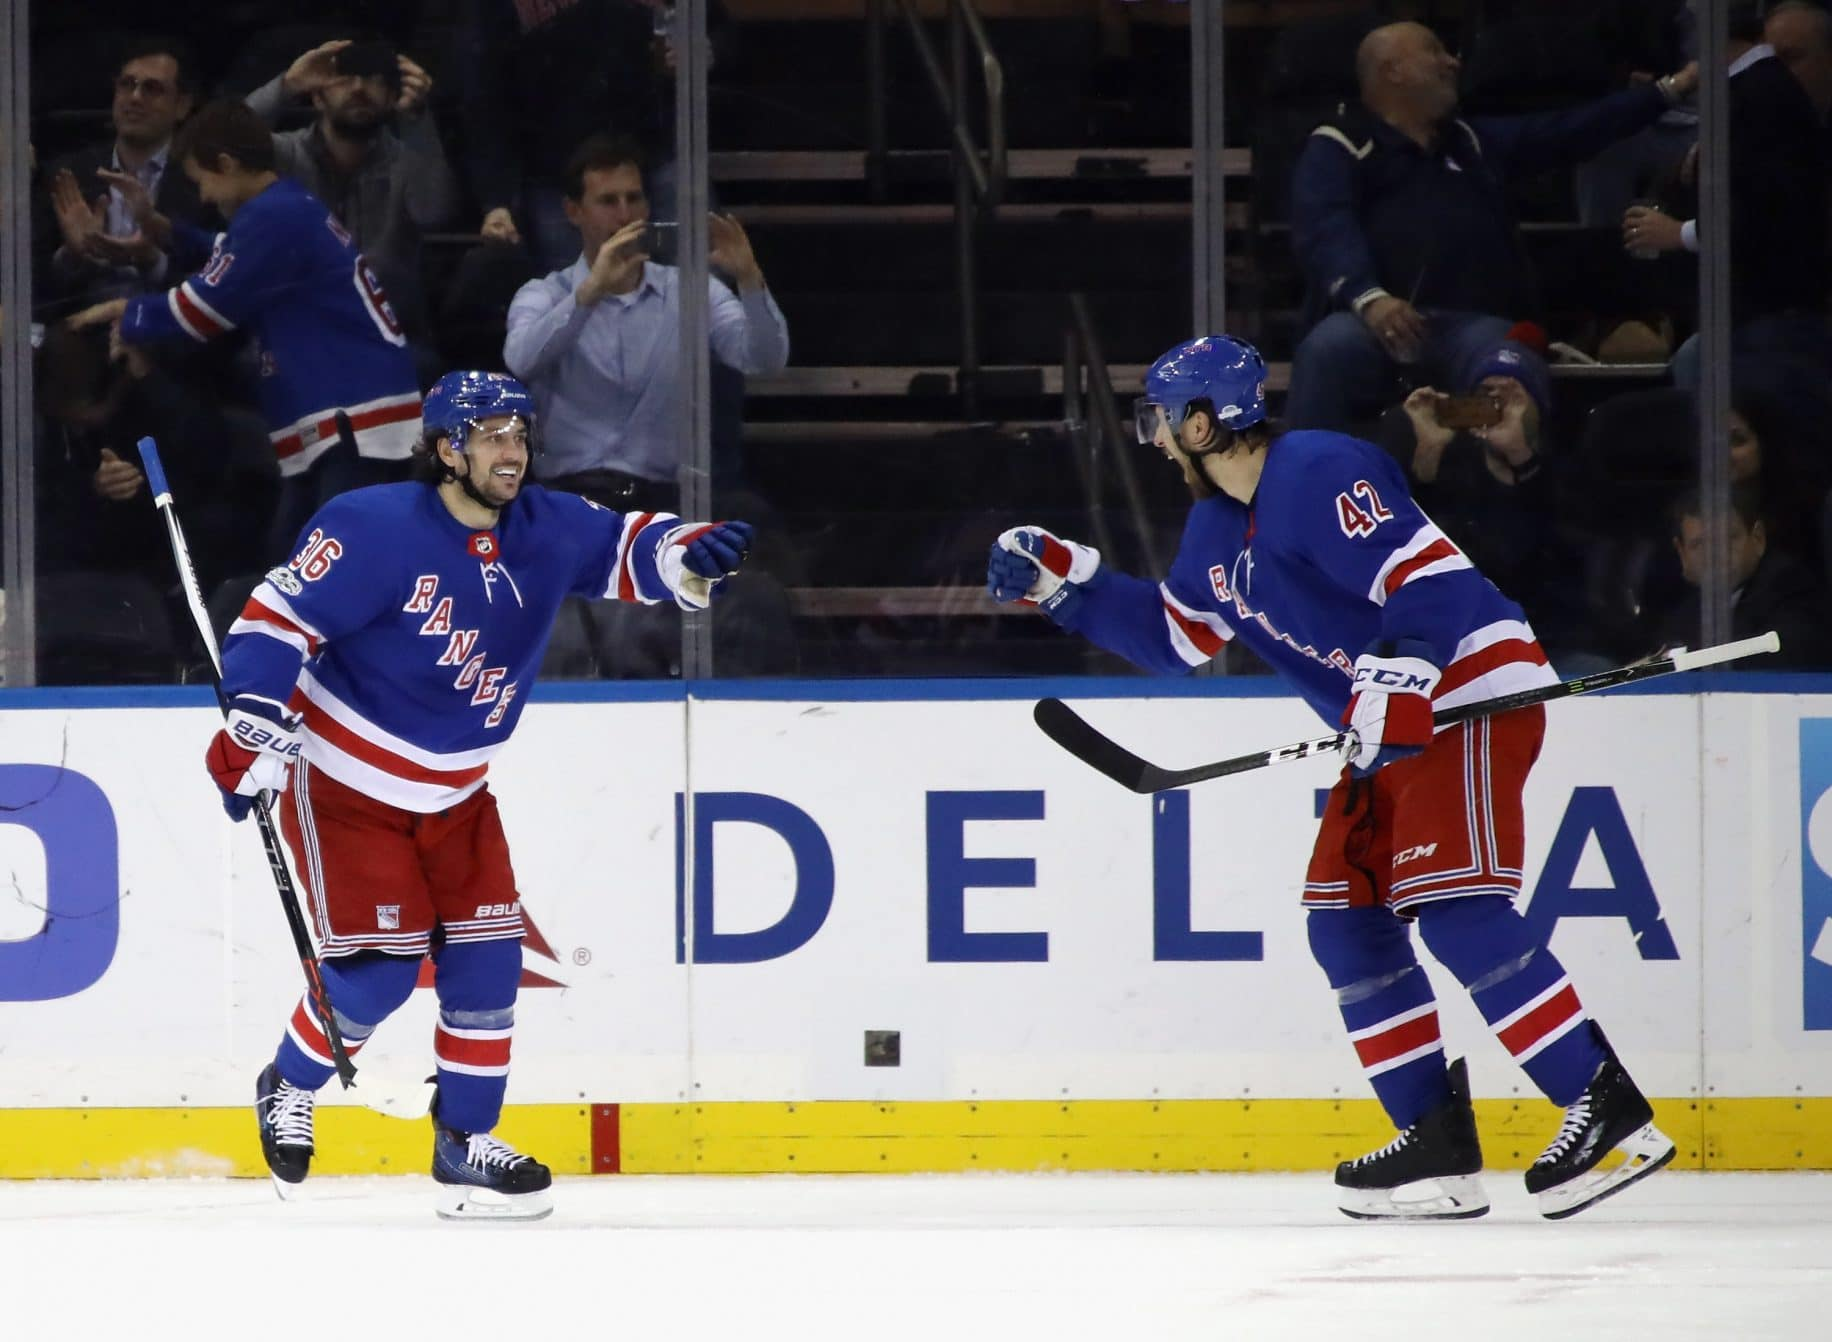 For New York Rangers Brendan Smith, Winning is a 'Double-Edged Sword' 1